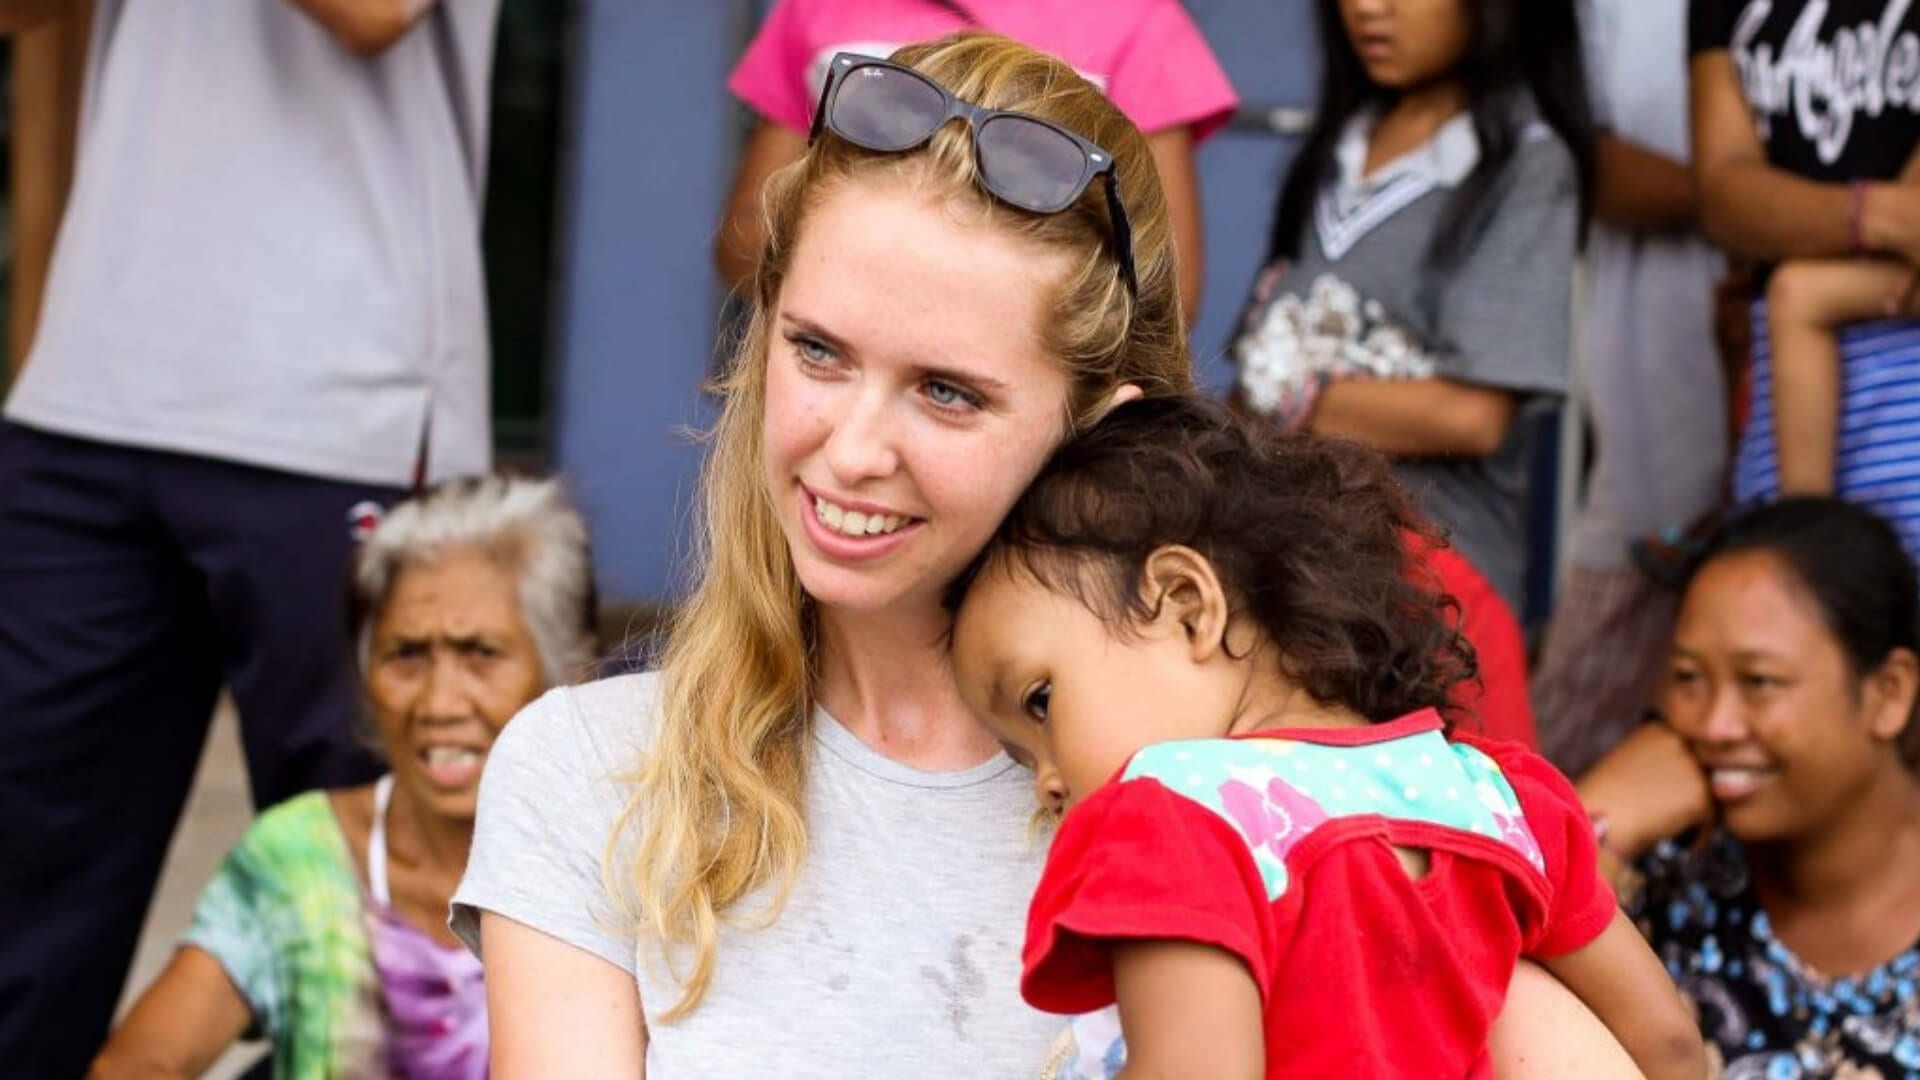 A blond girl is holding an Indonesian child that is cuddling her in Indonesia.